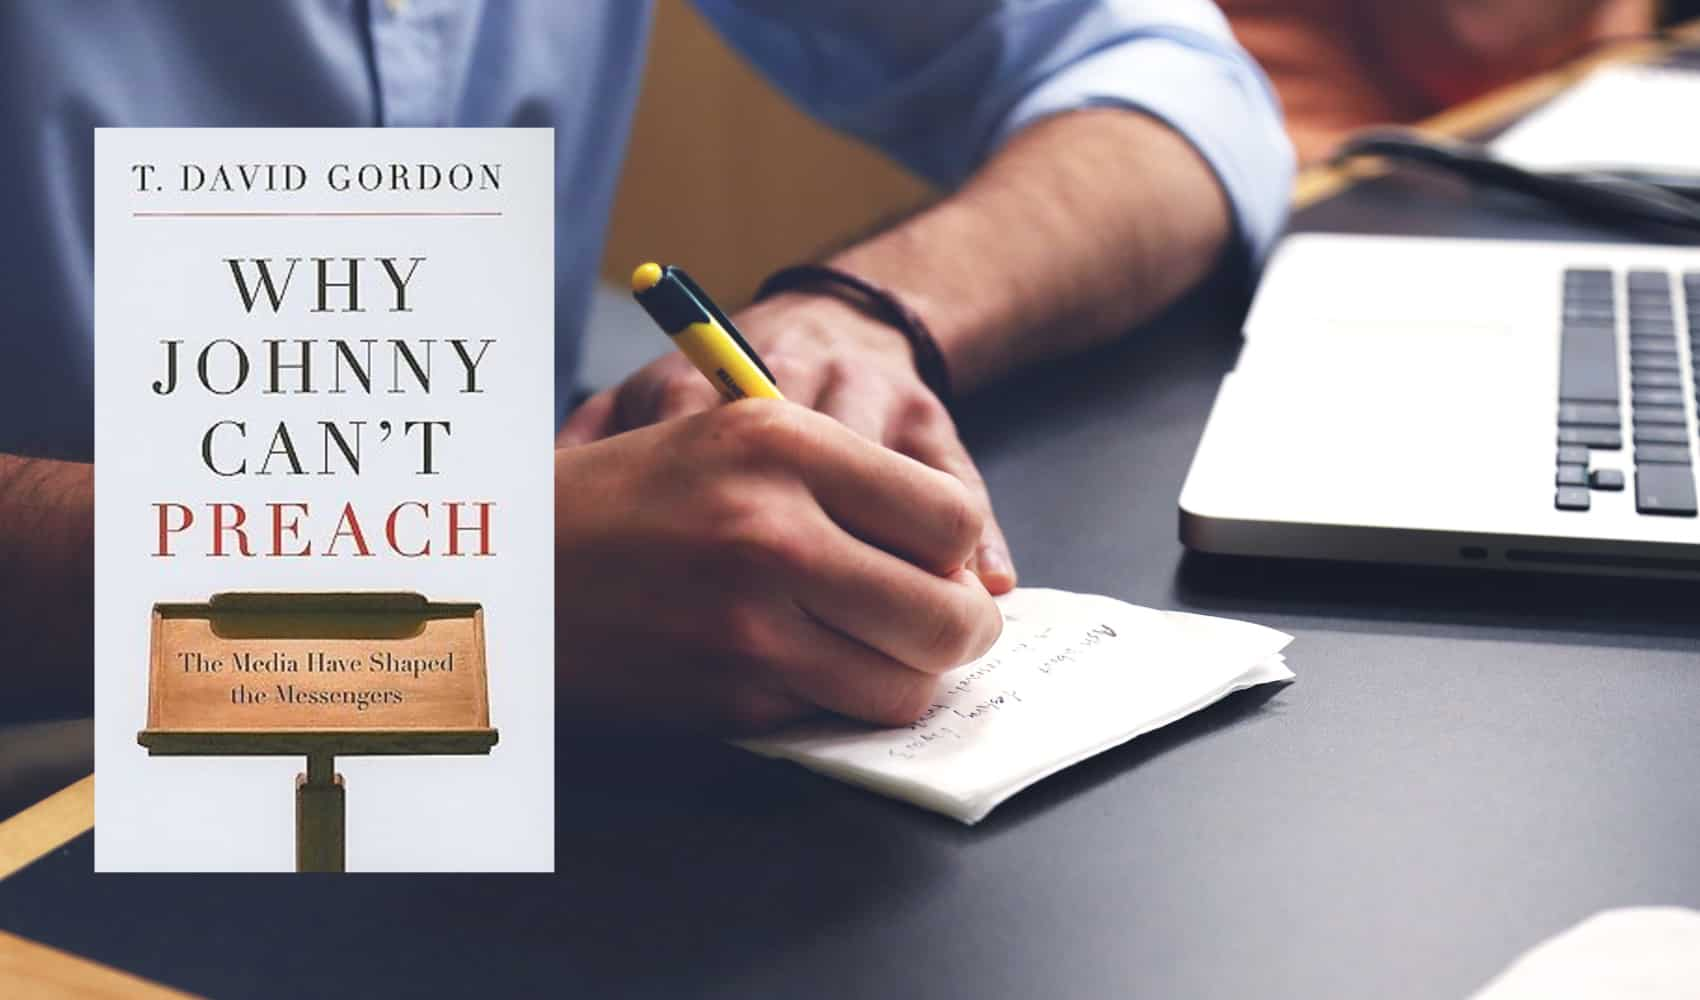 Top Quotes and Takeaways From <em>Why Johnny Can't Preach</em>